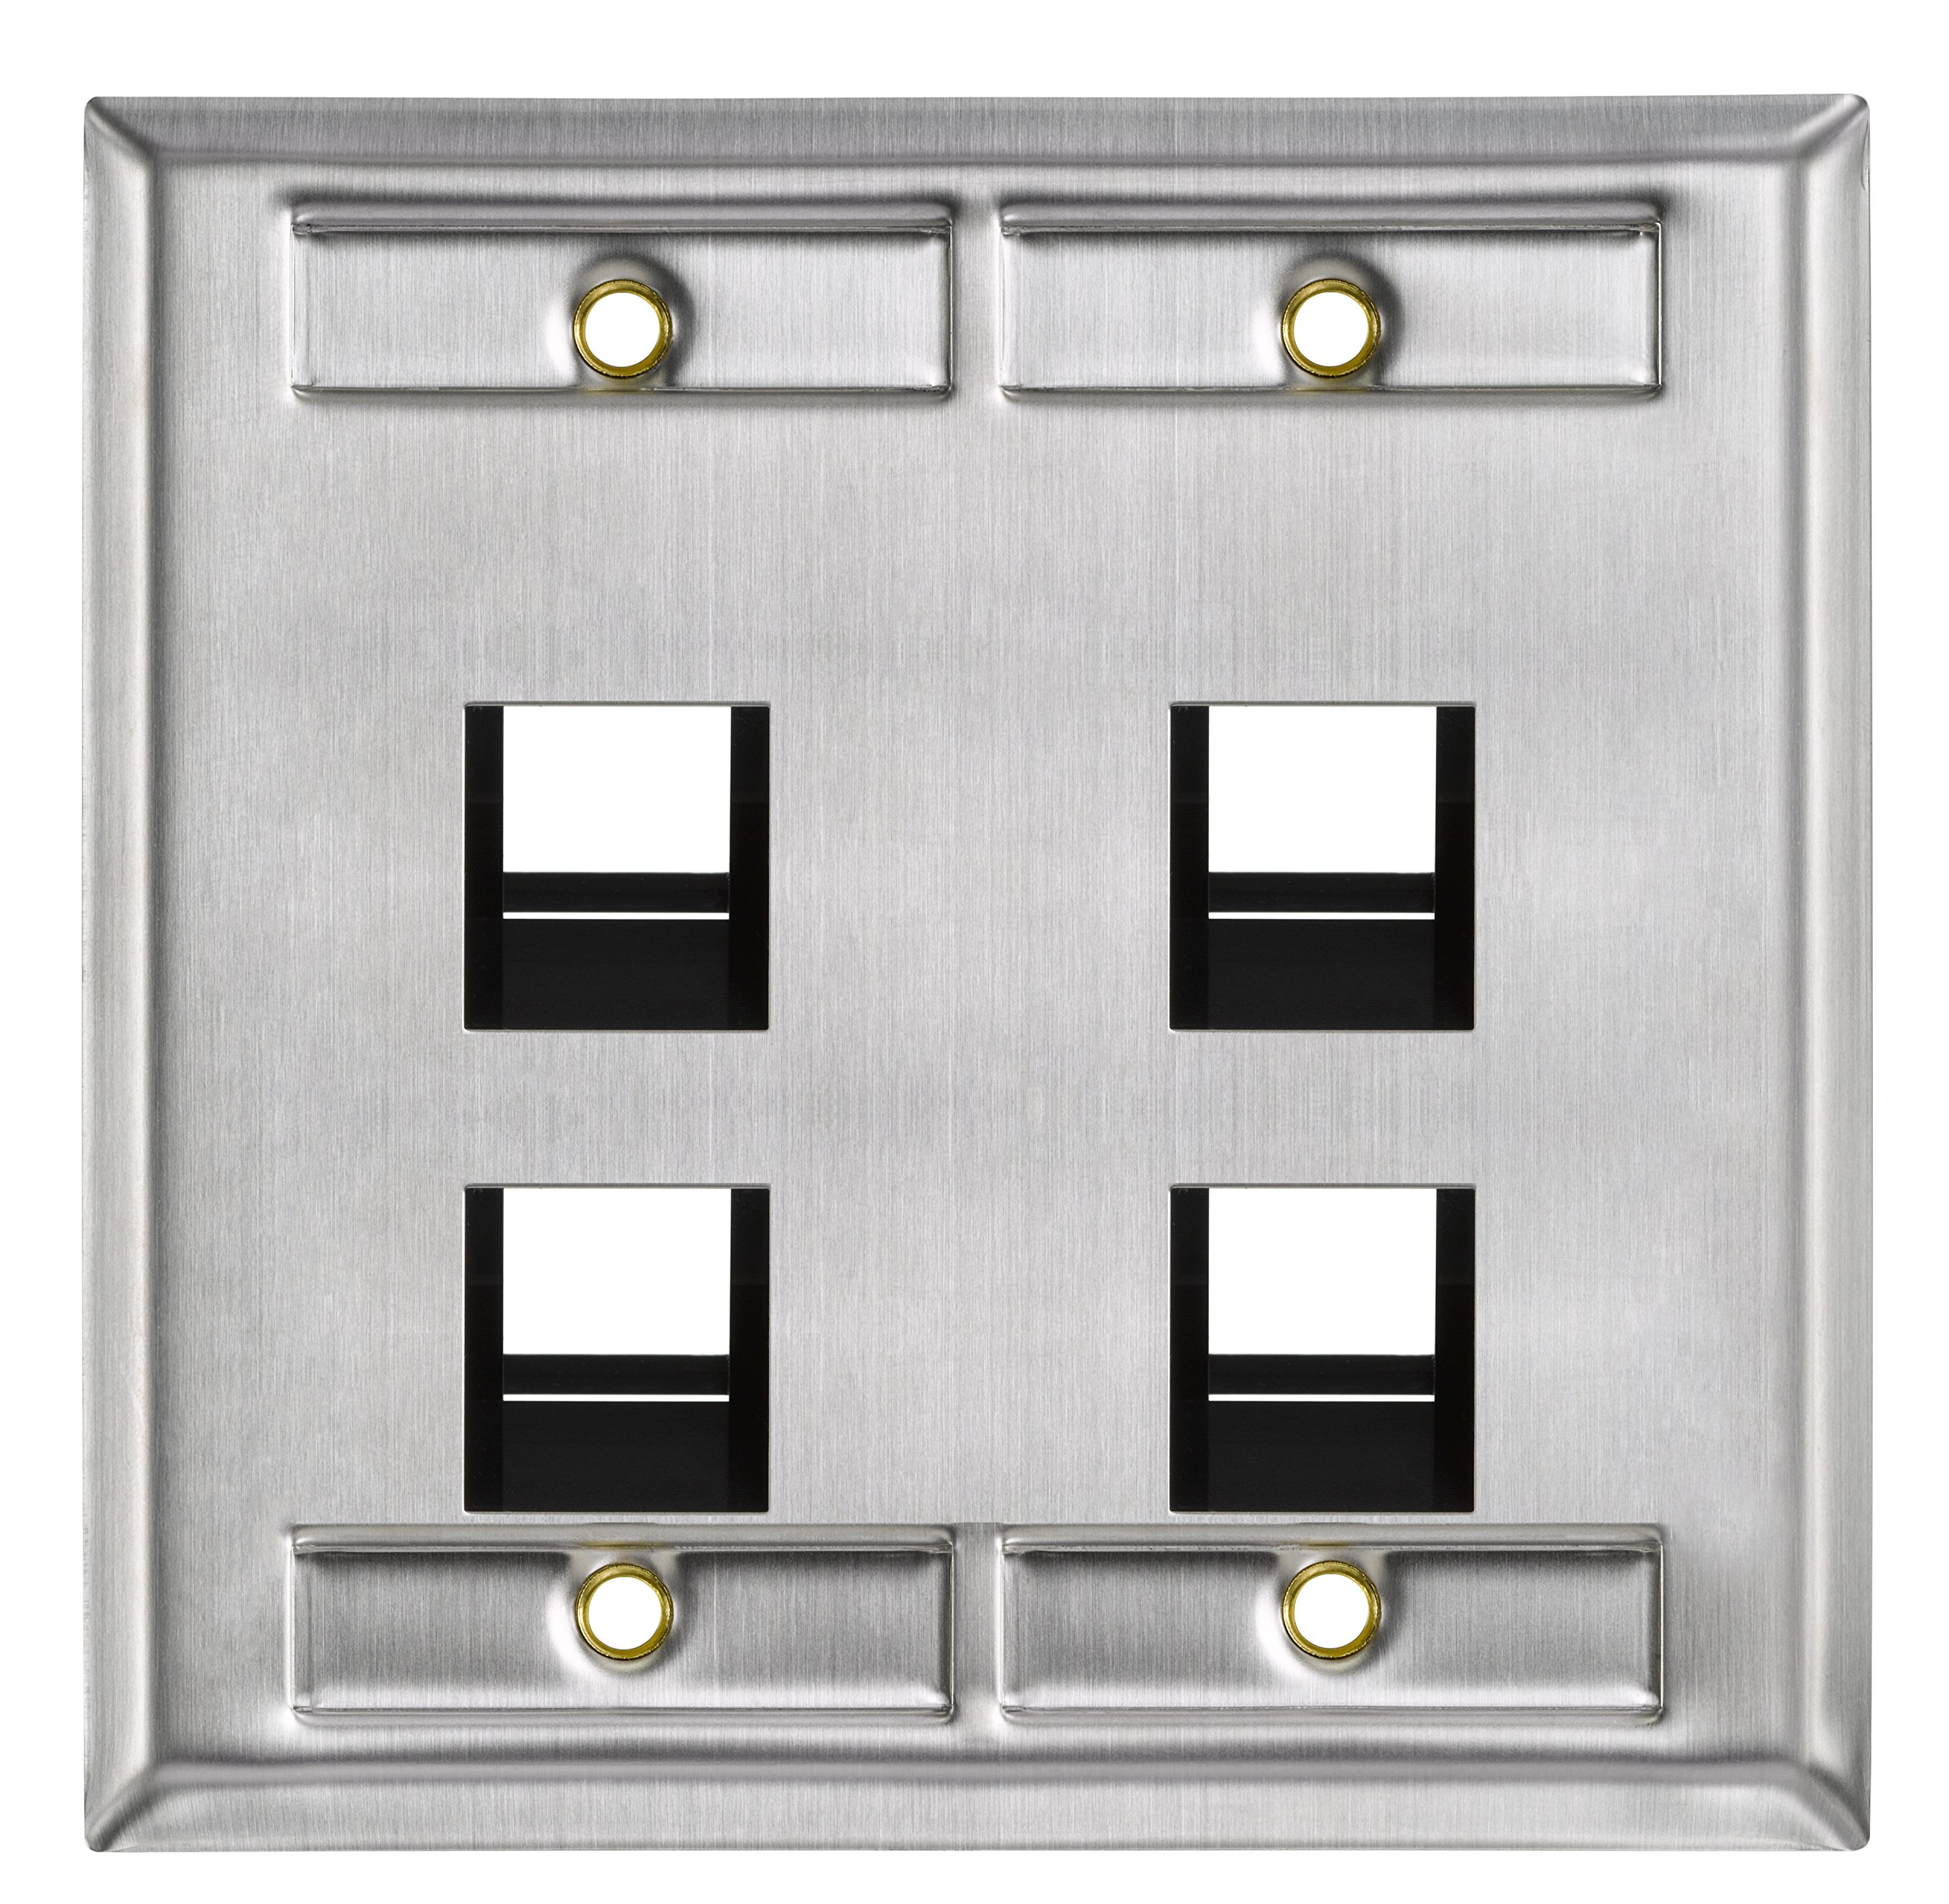 Leviton 43081-2L4 4-Port Angled Stainless Steel QuickPort Dual Gang Wallplate with ID Windows